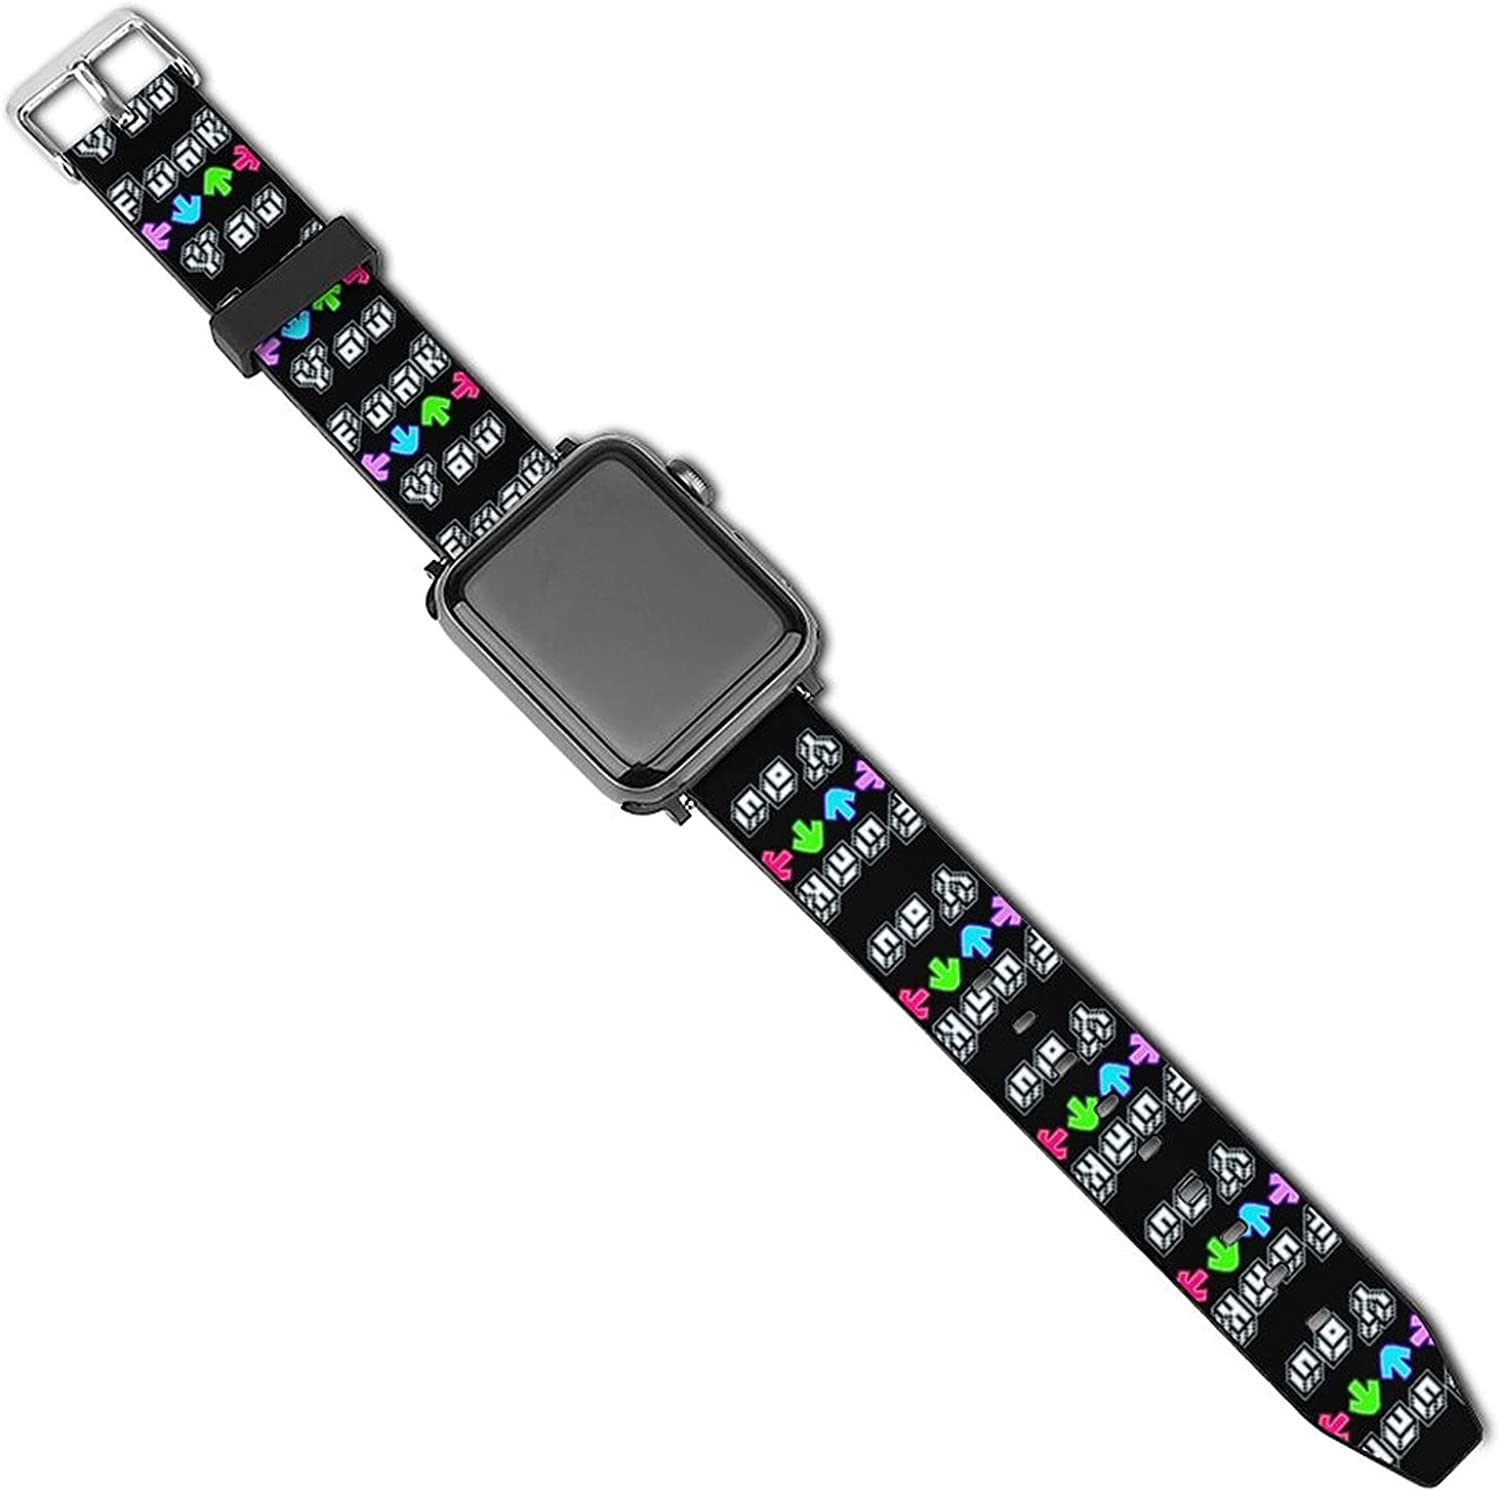 Friday Night Funkin Adjustable Anime Leather Strap Compatible for Apple Watch Replacement Wristband with iWatch Series 5 4 3 2 1 (42/44mm 38/40mm) for Boys Girls Men Women